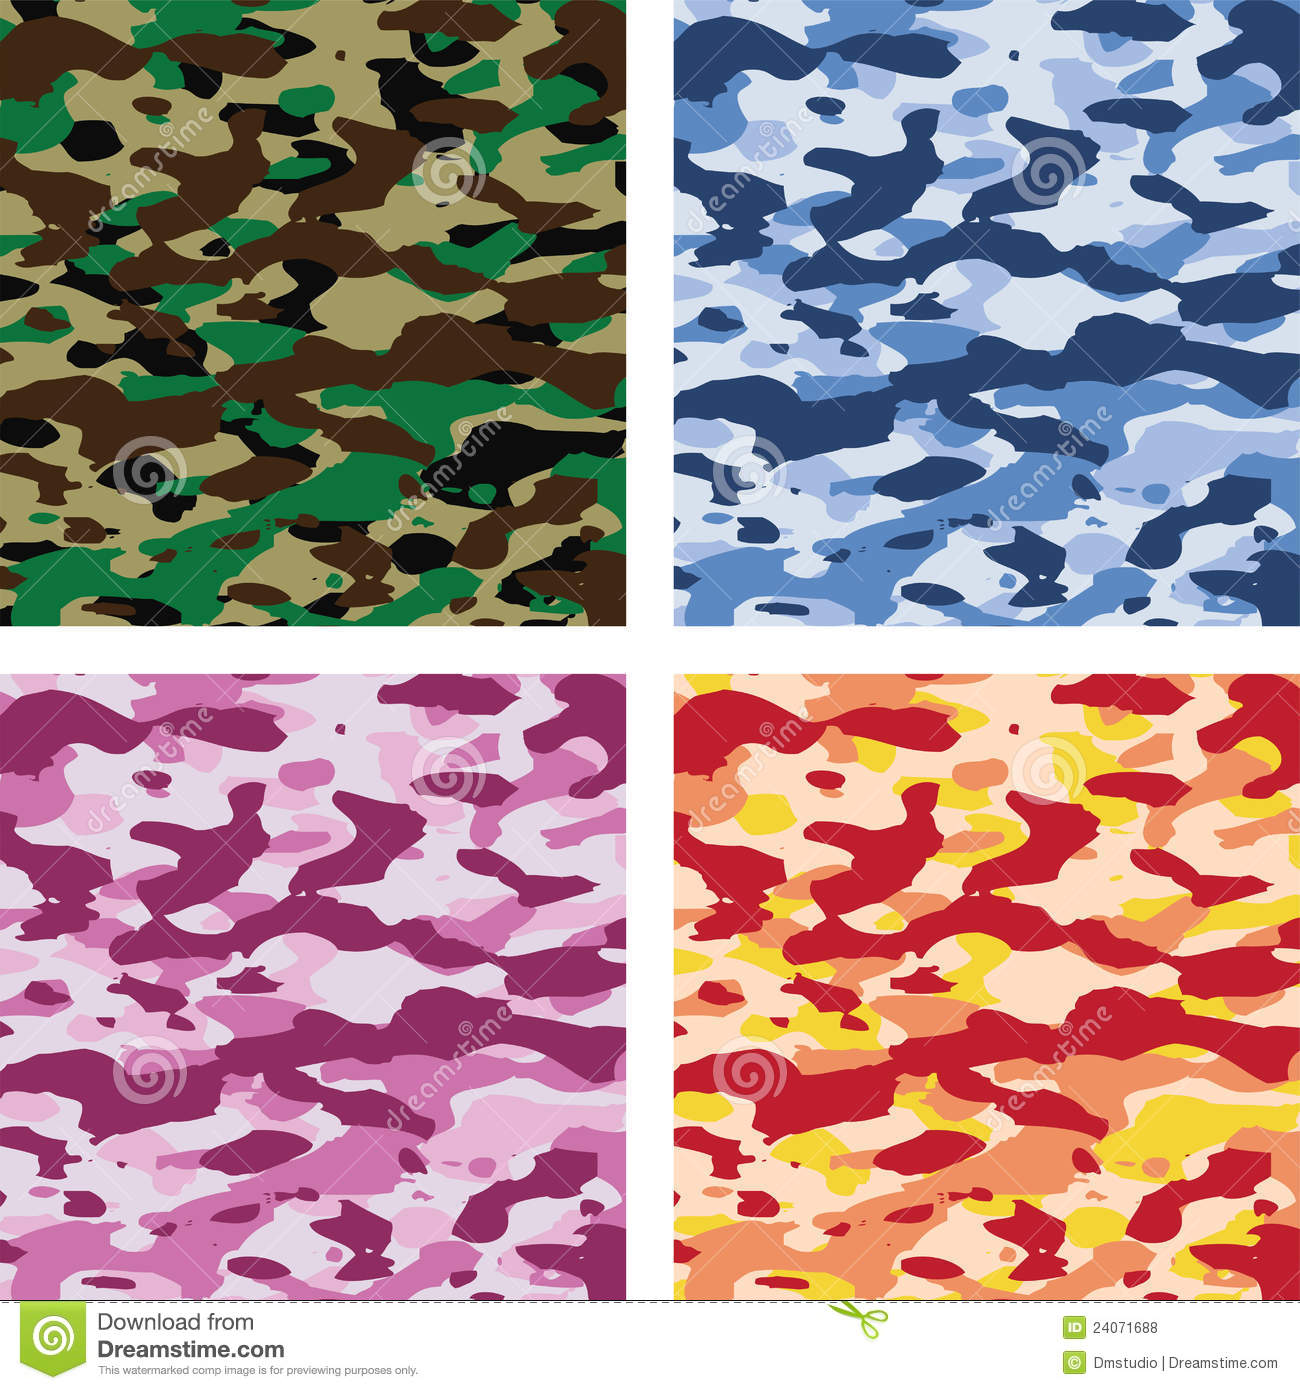 Pixel Forest Wallpaper Cute Vector Colorful Camouflage Patterns Royalty Free Stock